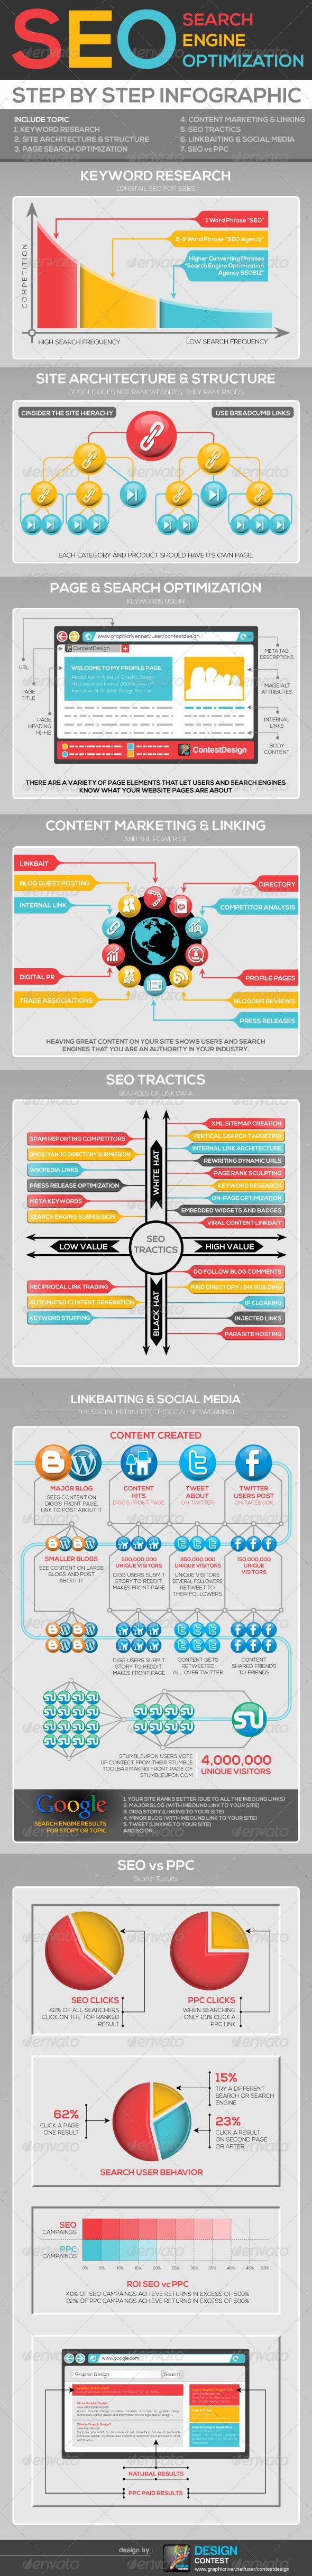 SEO Search Engine Optimization All Infographic